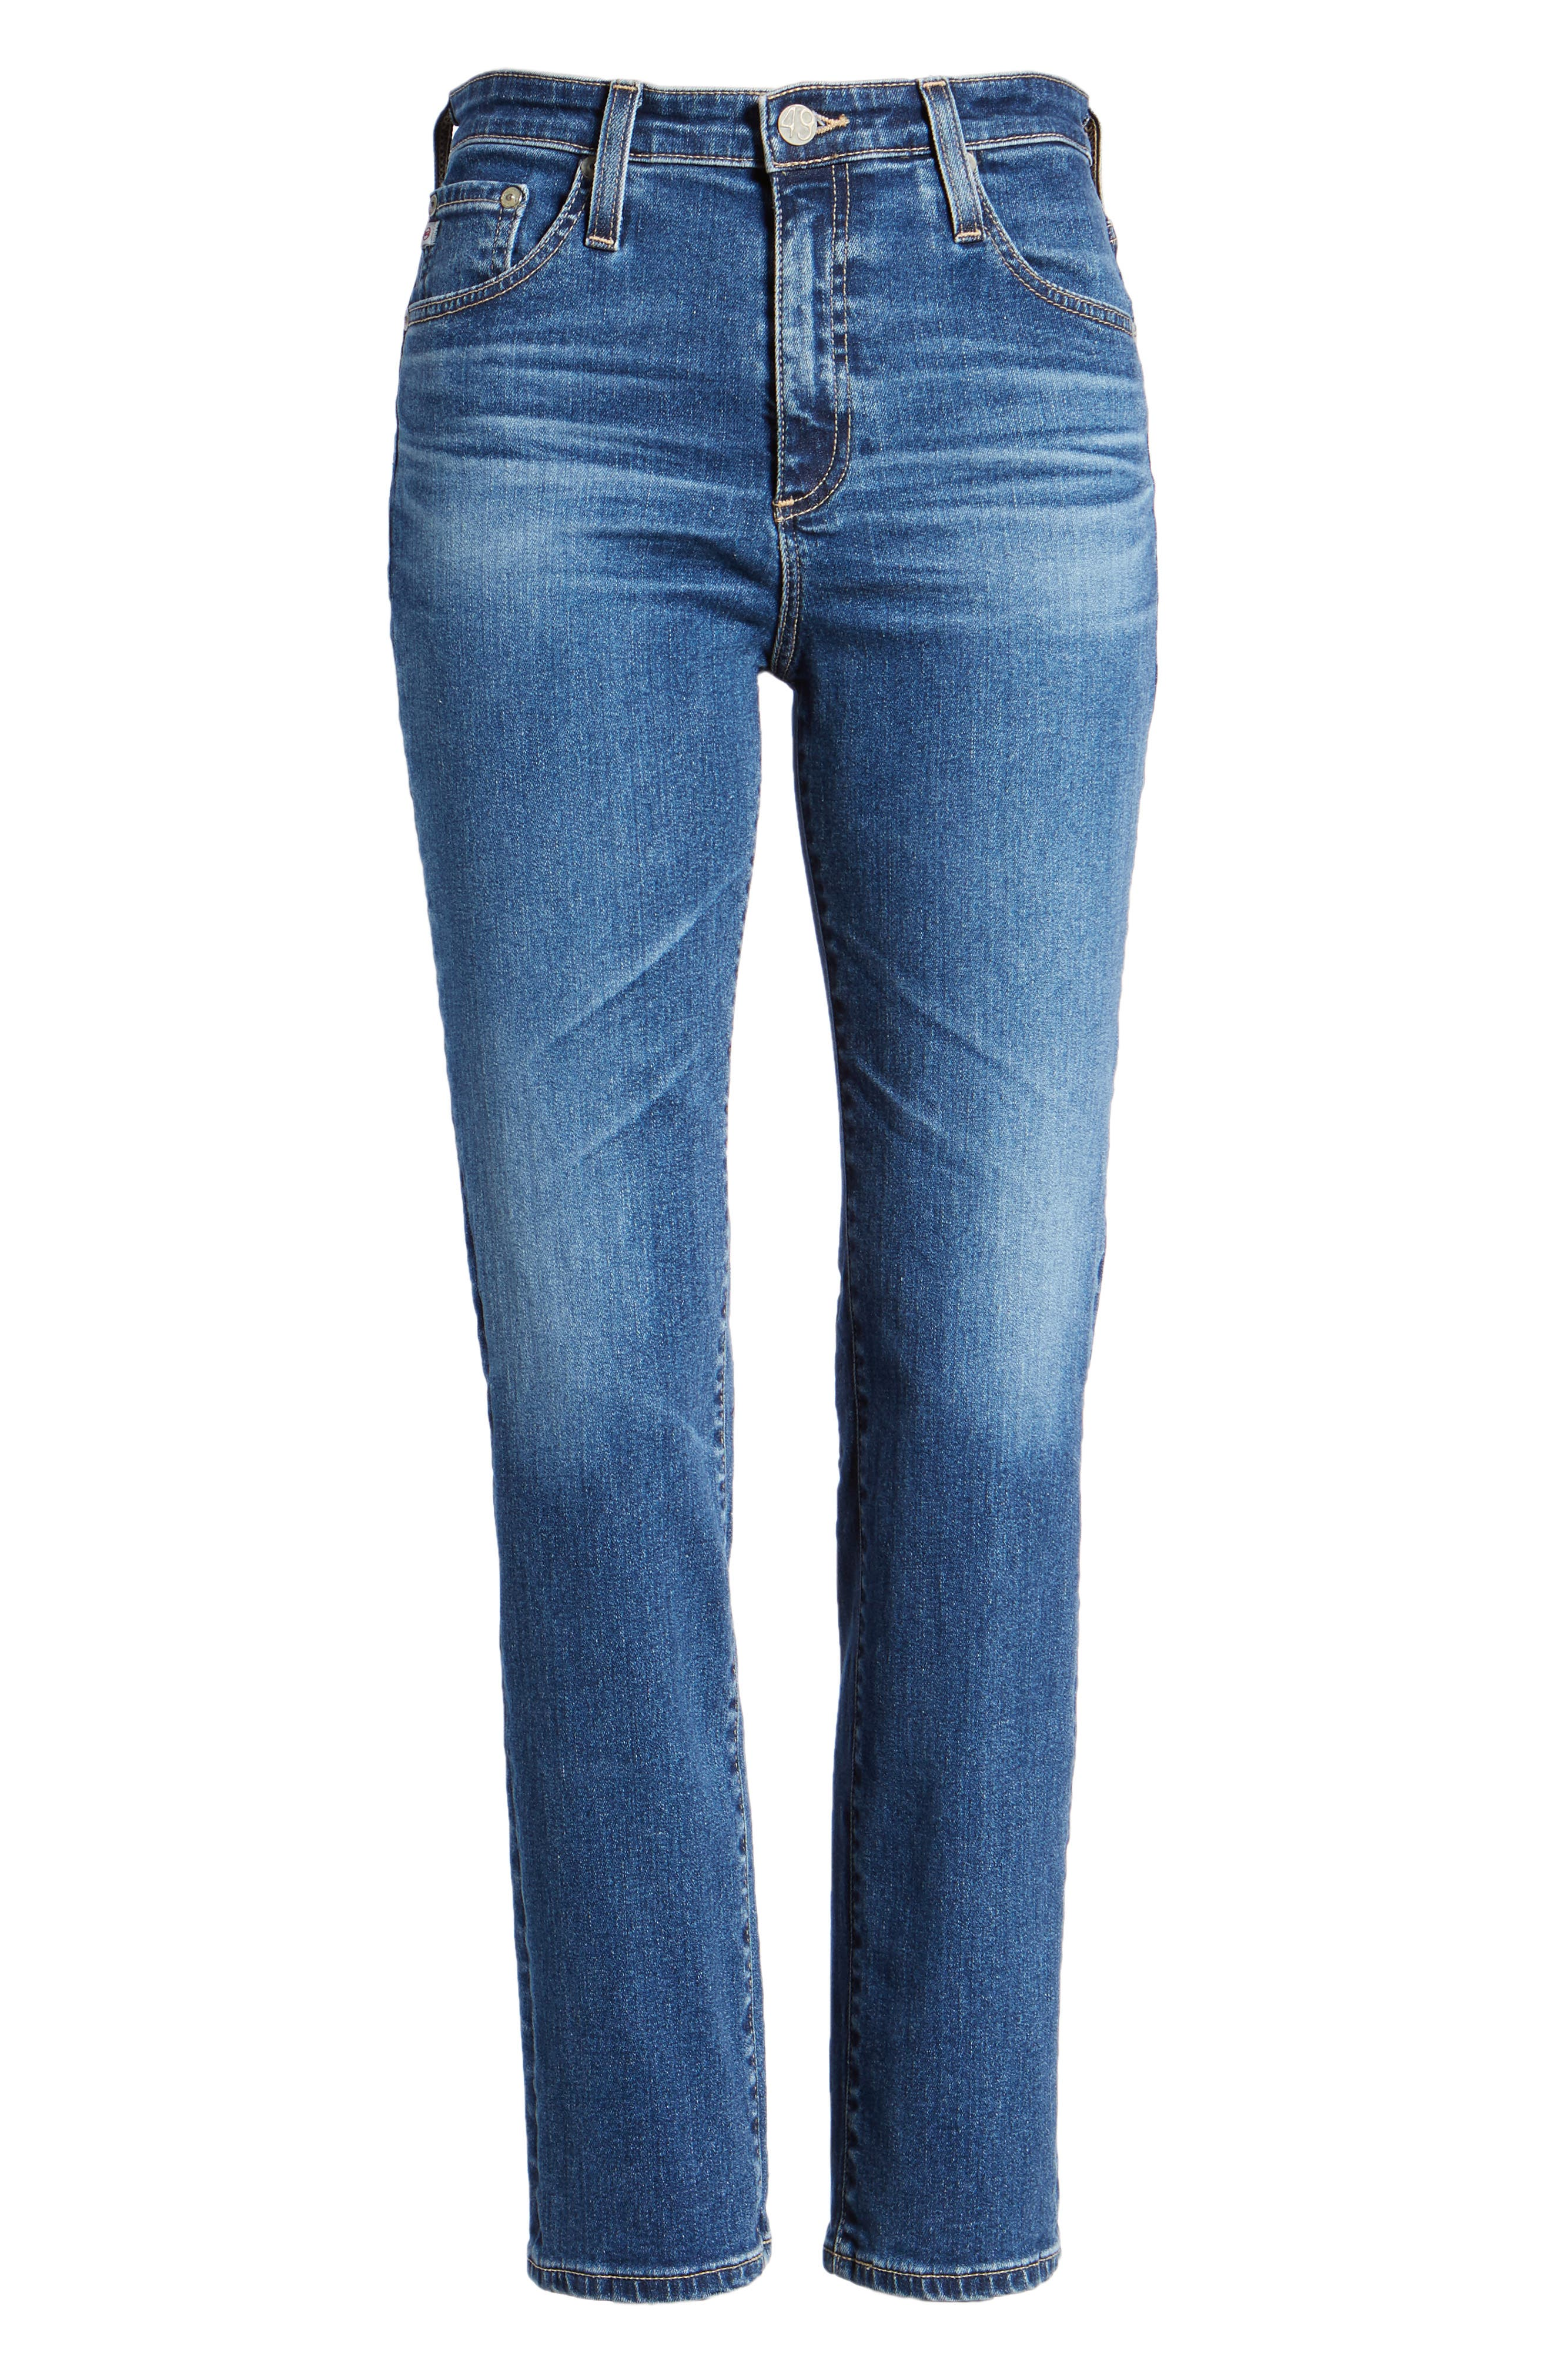 The Isabelle High Waist Crop Straight Leg Jeans,                             Alternate thumbnail 7, color,                             10 YEARS CAMBRIA